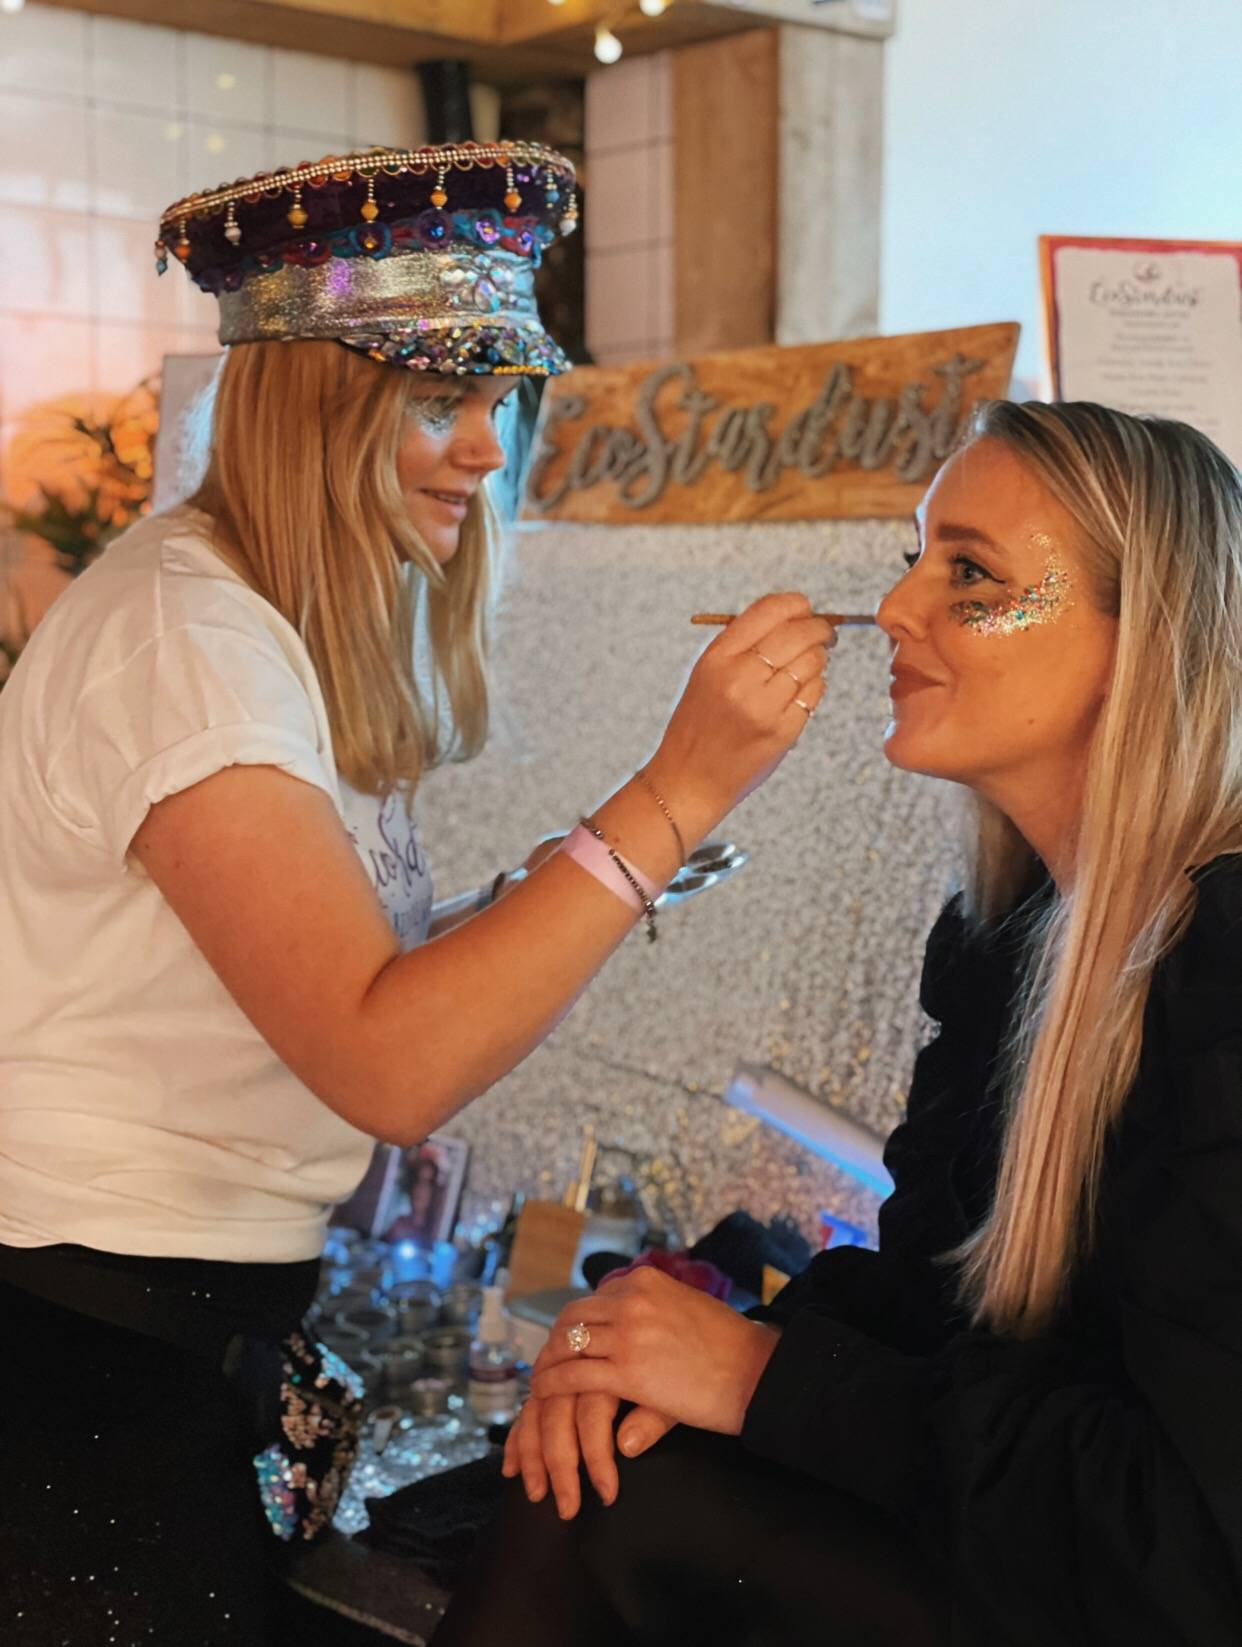 Image shows our founder Kath glittering someone at the biodegradable glitter bar. The woman already has lots of glitter on her face, and Kath is holding a bamboo makeup brush up to her face. They're both smiling.